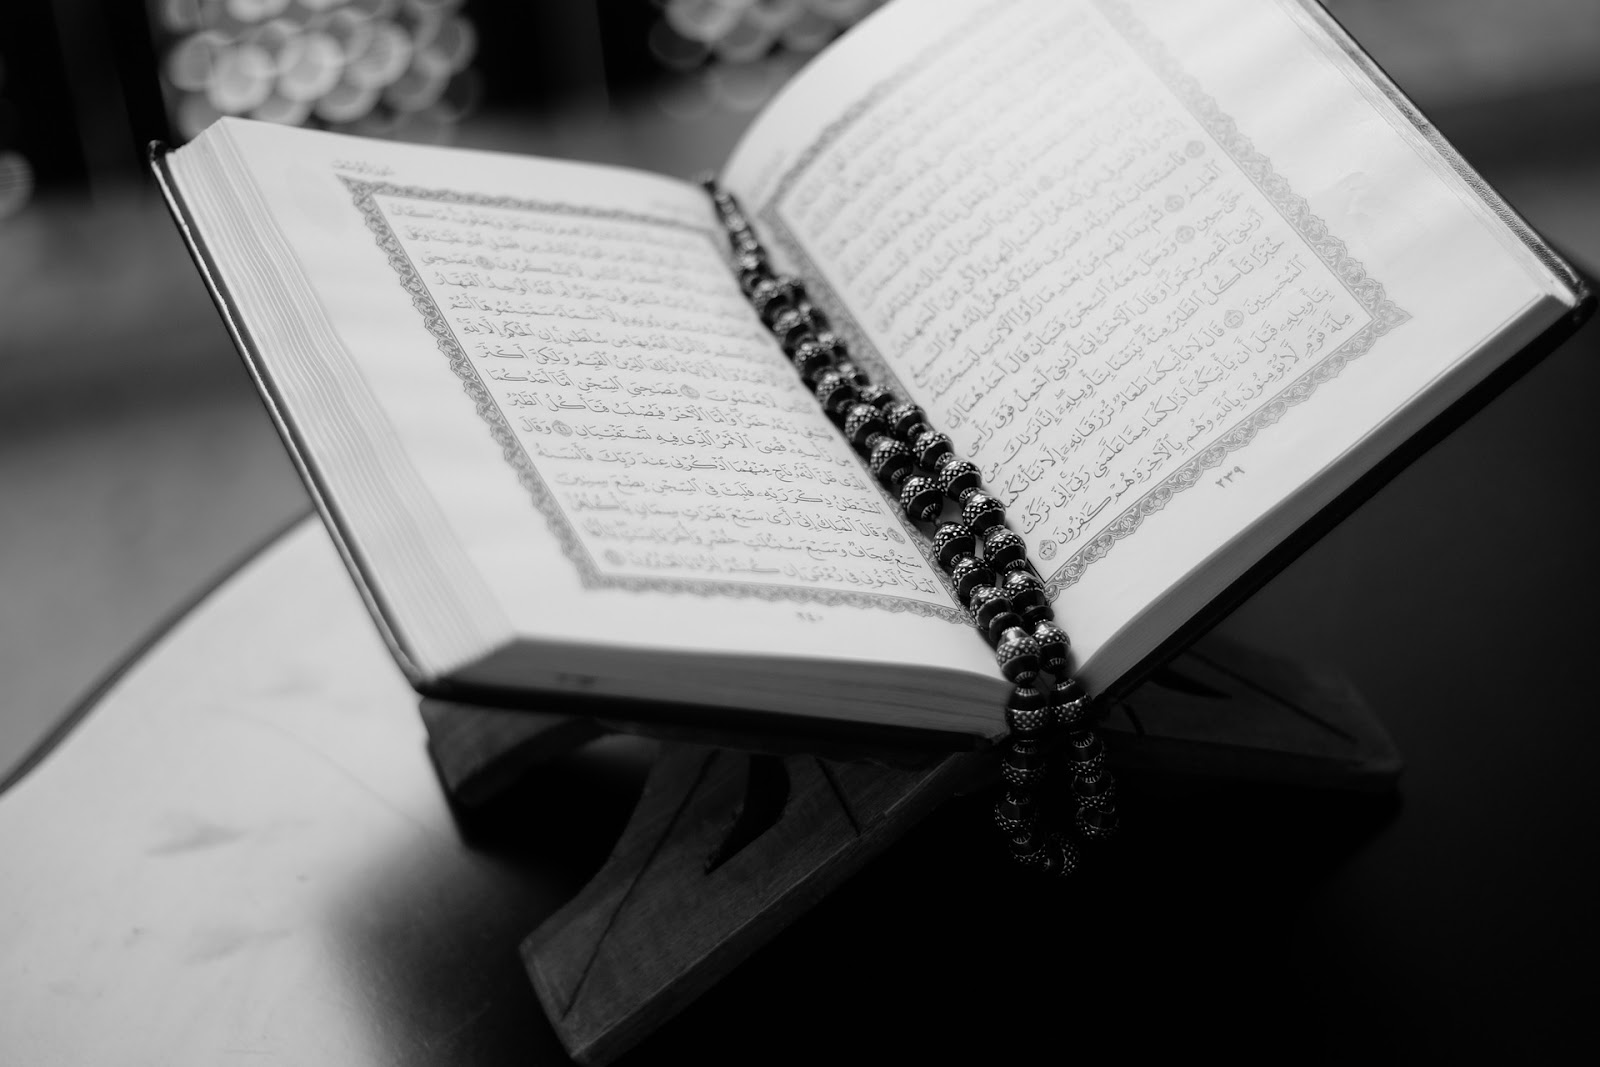 No blanket prohibition in the Quran against befriending non-Muslims